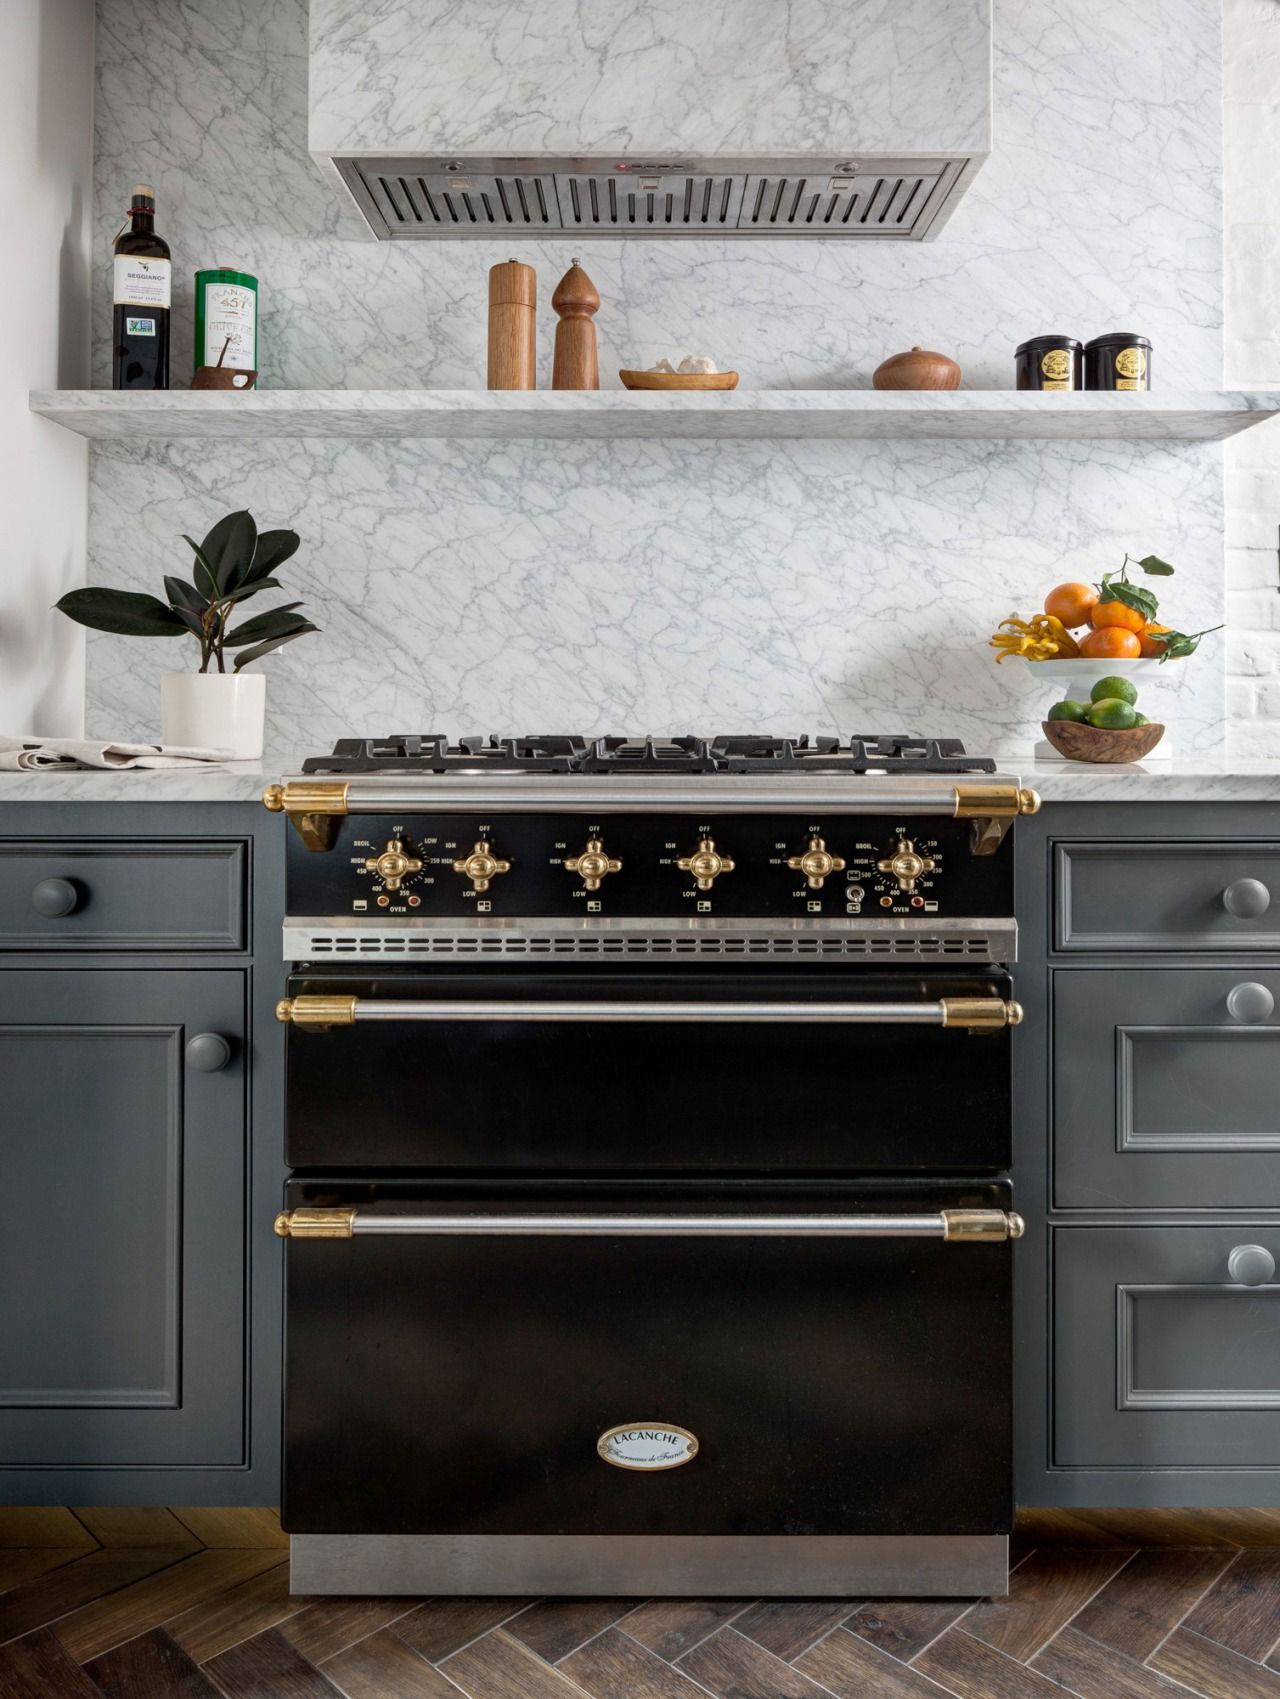 Küchendesign marmor color inspiration black stove  kitchen  pinterest  haus